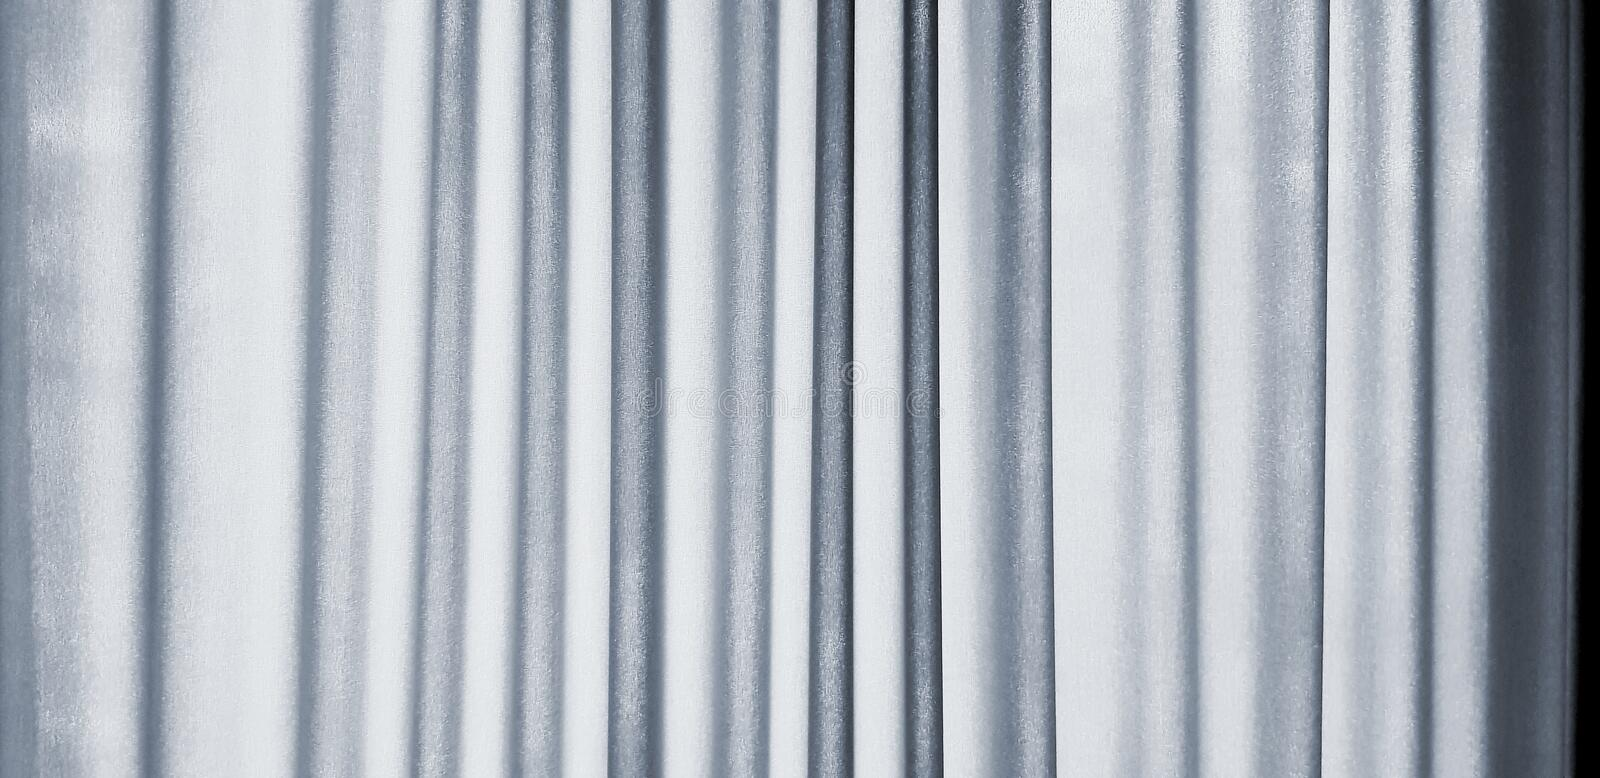 curtain fabric or cotton hanging